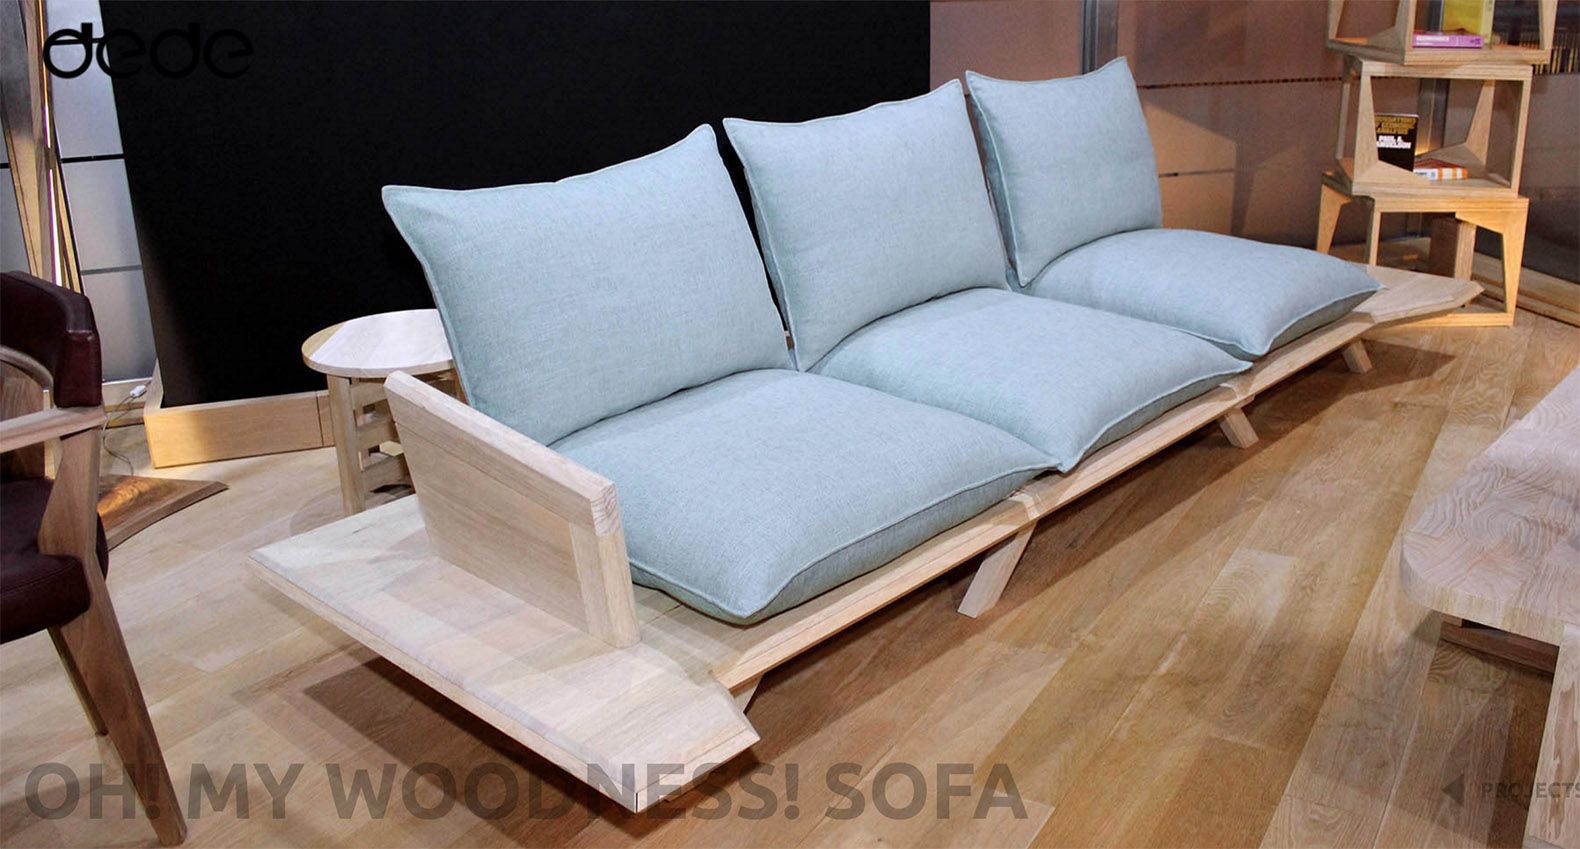 Sofa Planer Sustainable Home Inhabitat Green Design Innovation